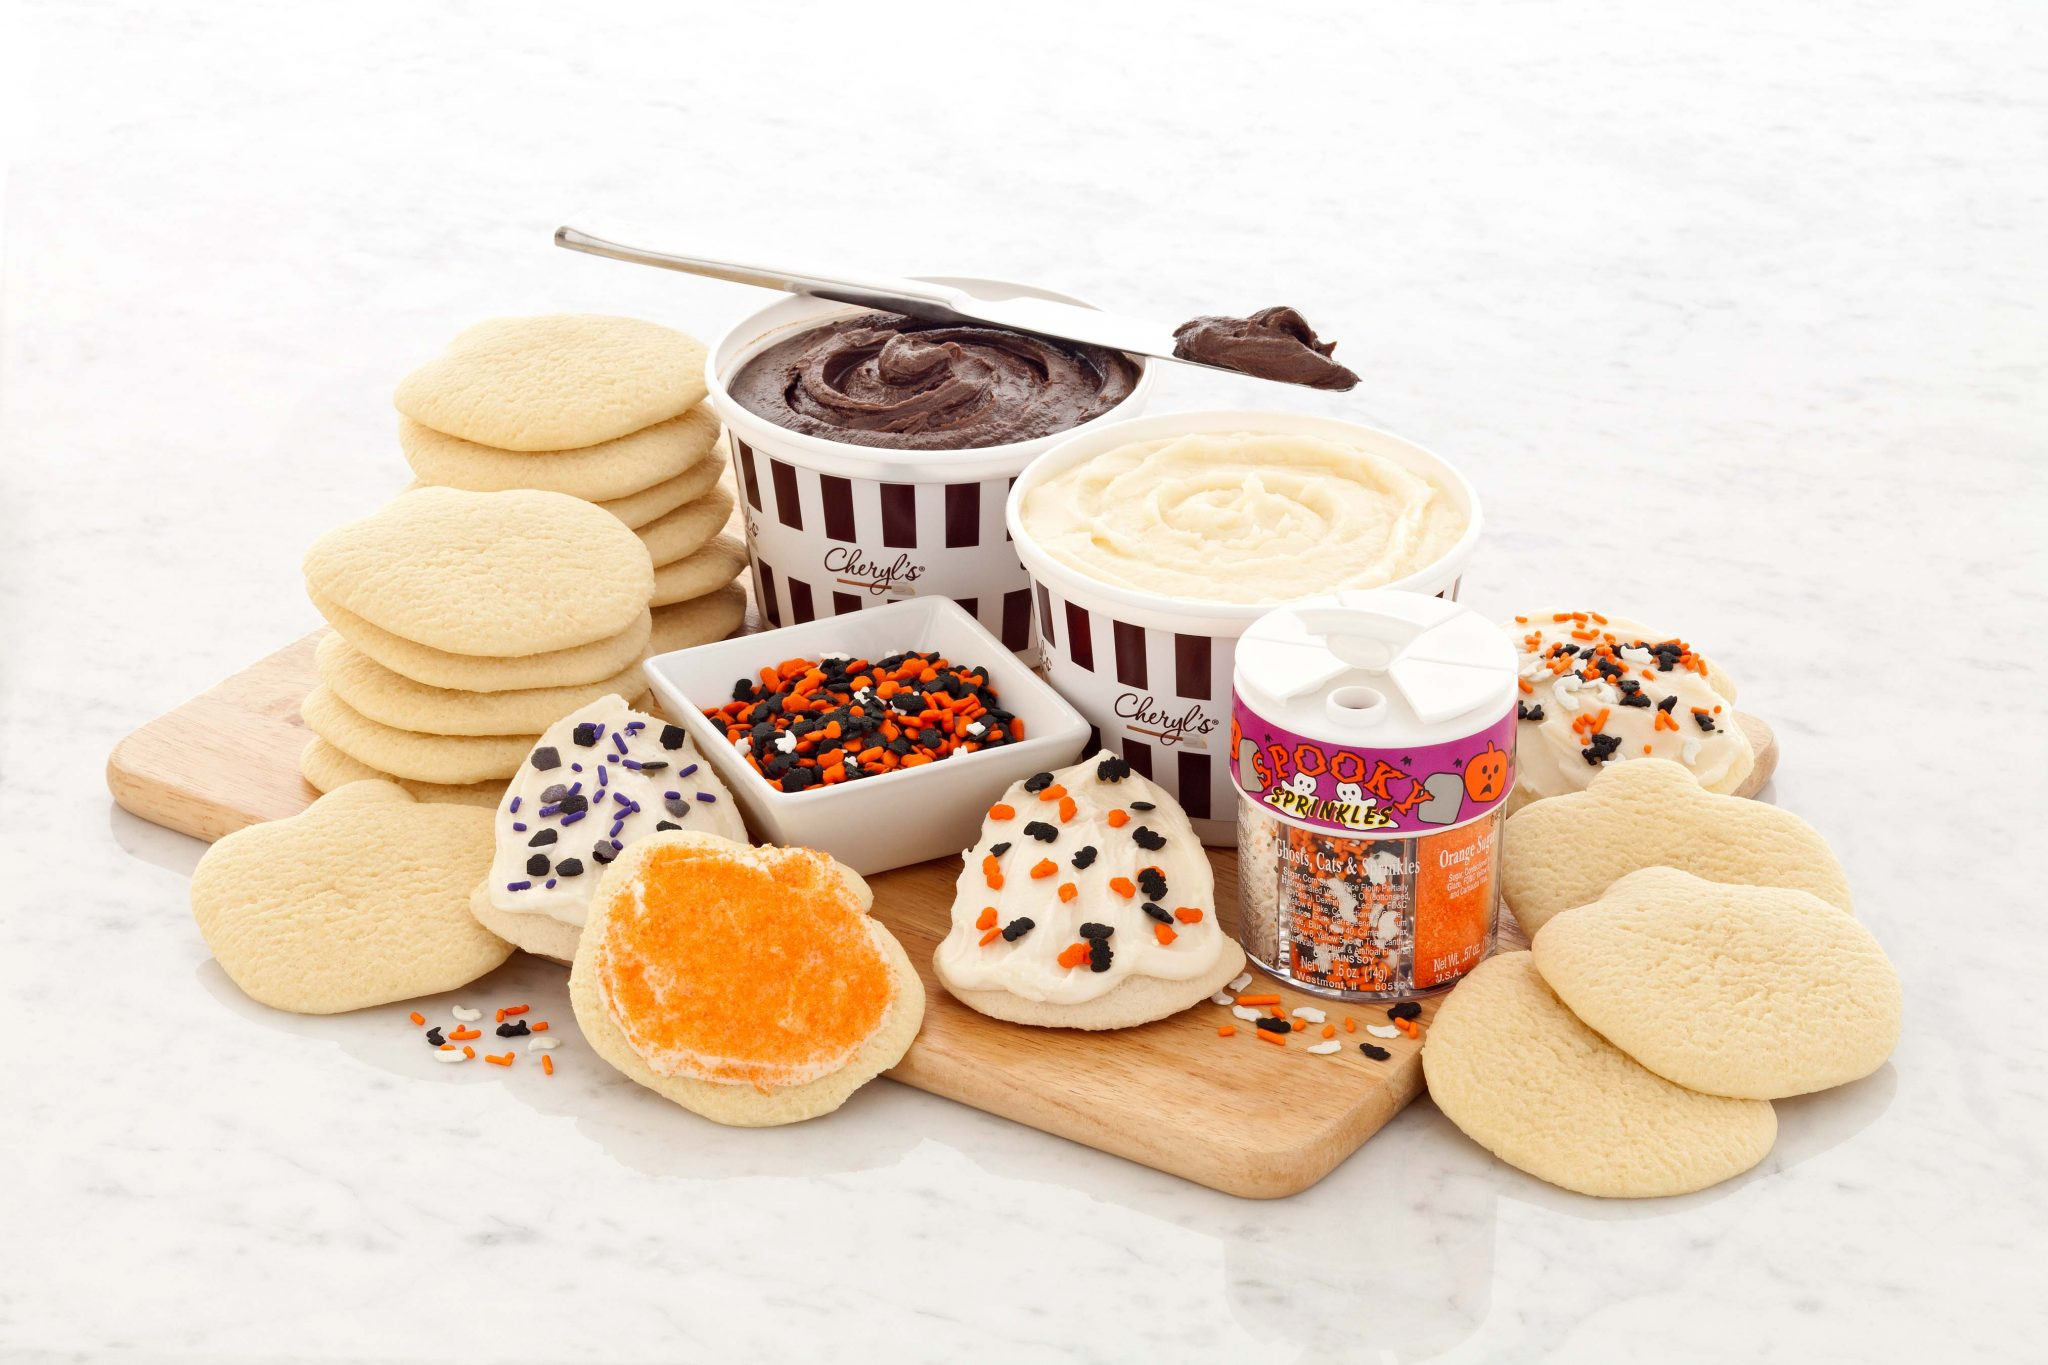 Halloween Cut Out Cookies  Win a Halloween Cookie Decorating Kit from Cheryl s Cookies